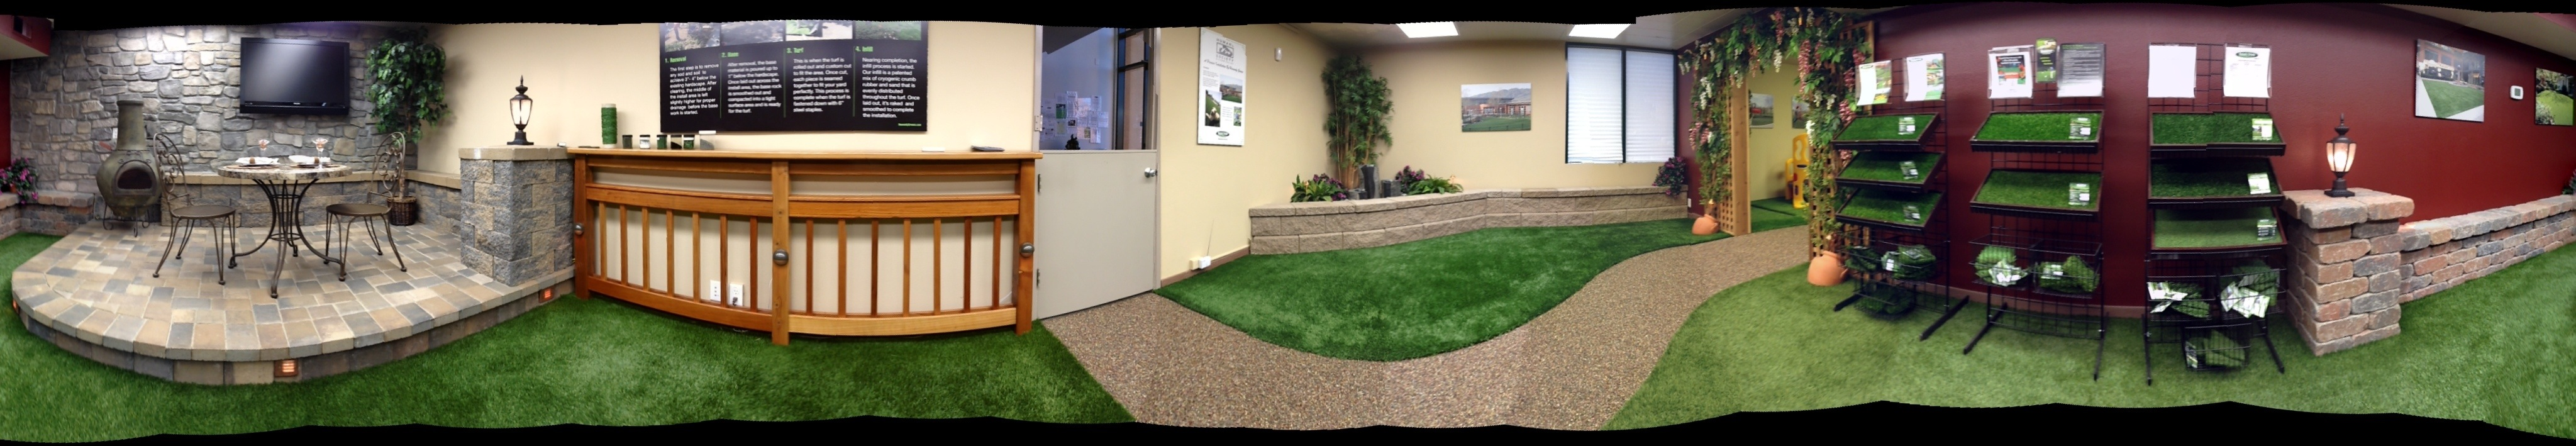 Artificial_Grass_Showroom